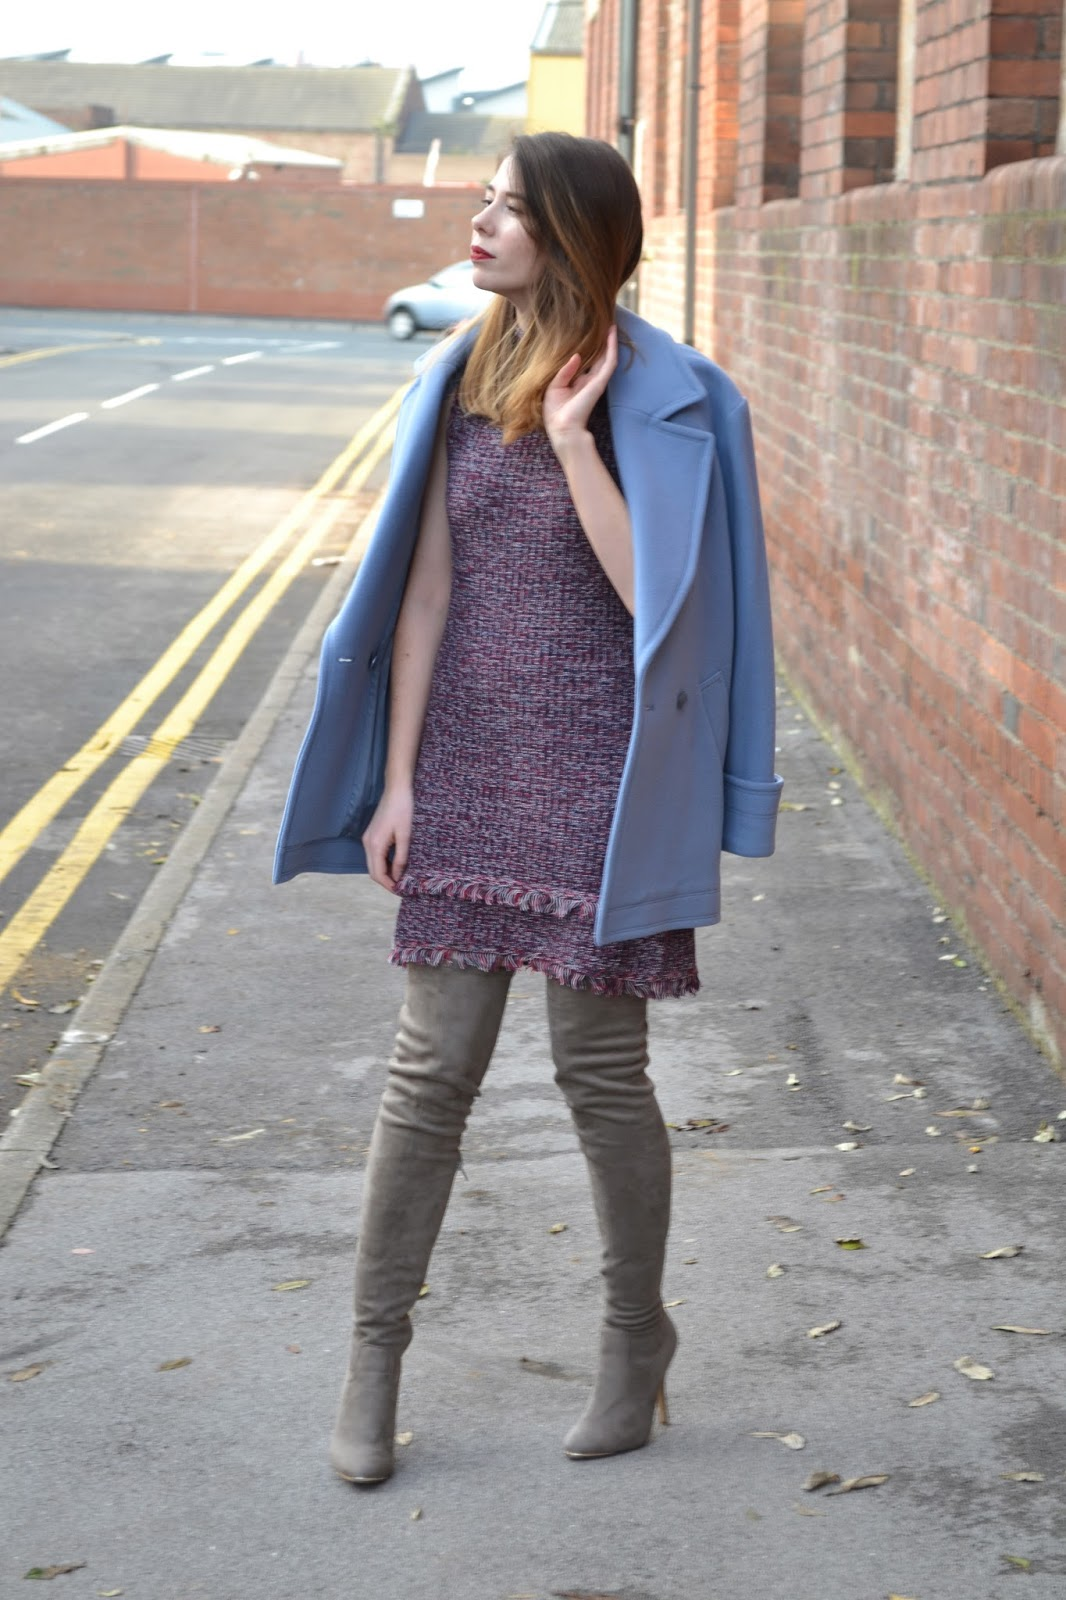 womens affordable highstreet fashion blog featuring British street style. Topshop knitted high neck jumper dress in chanel style. Thigh high grey suede boots from Matalan. Pastel blue double breasted jacket from Reiss. Holliescloset